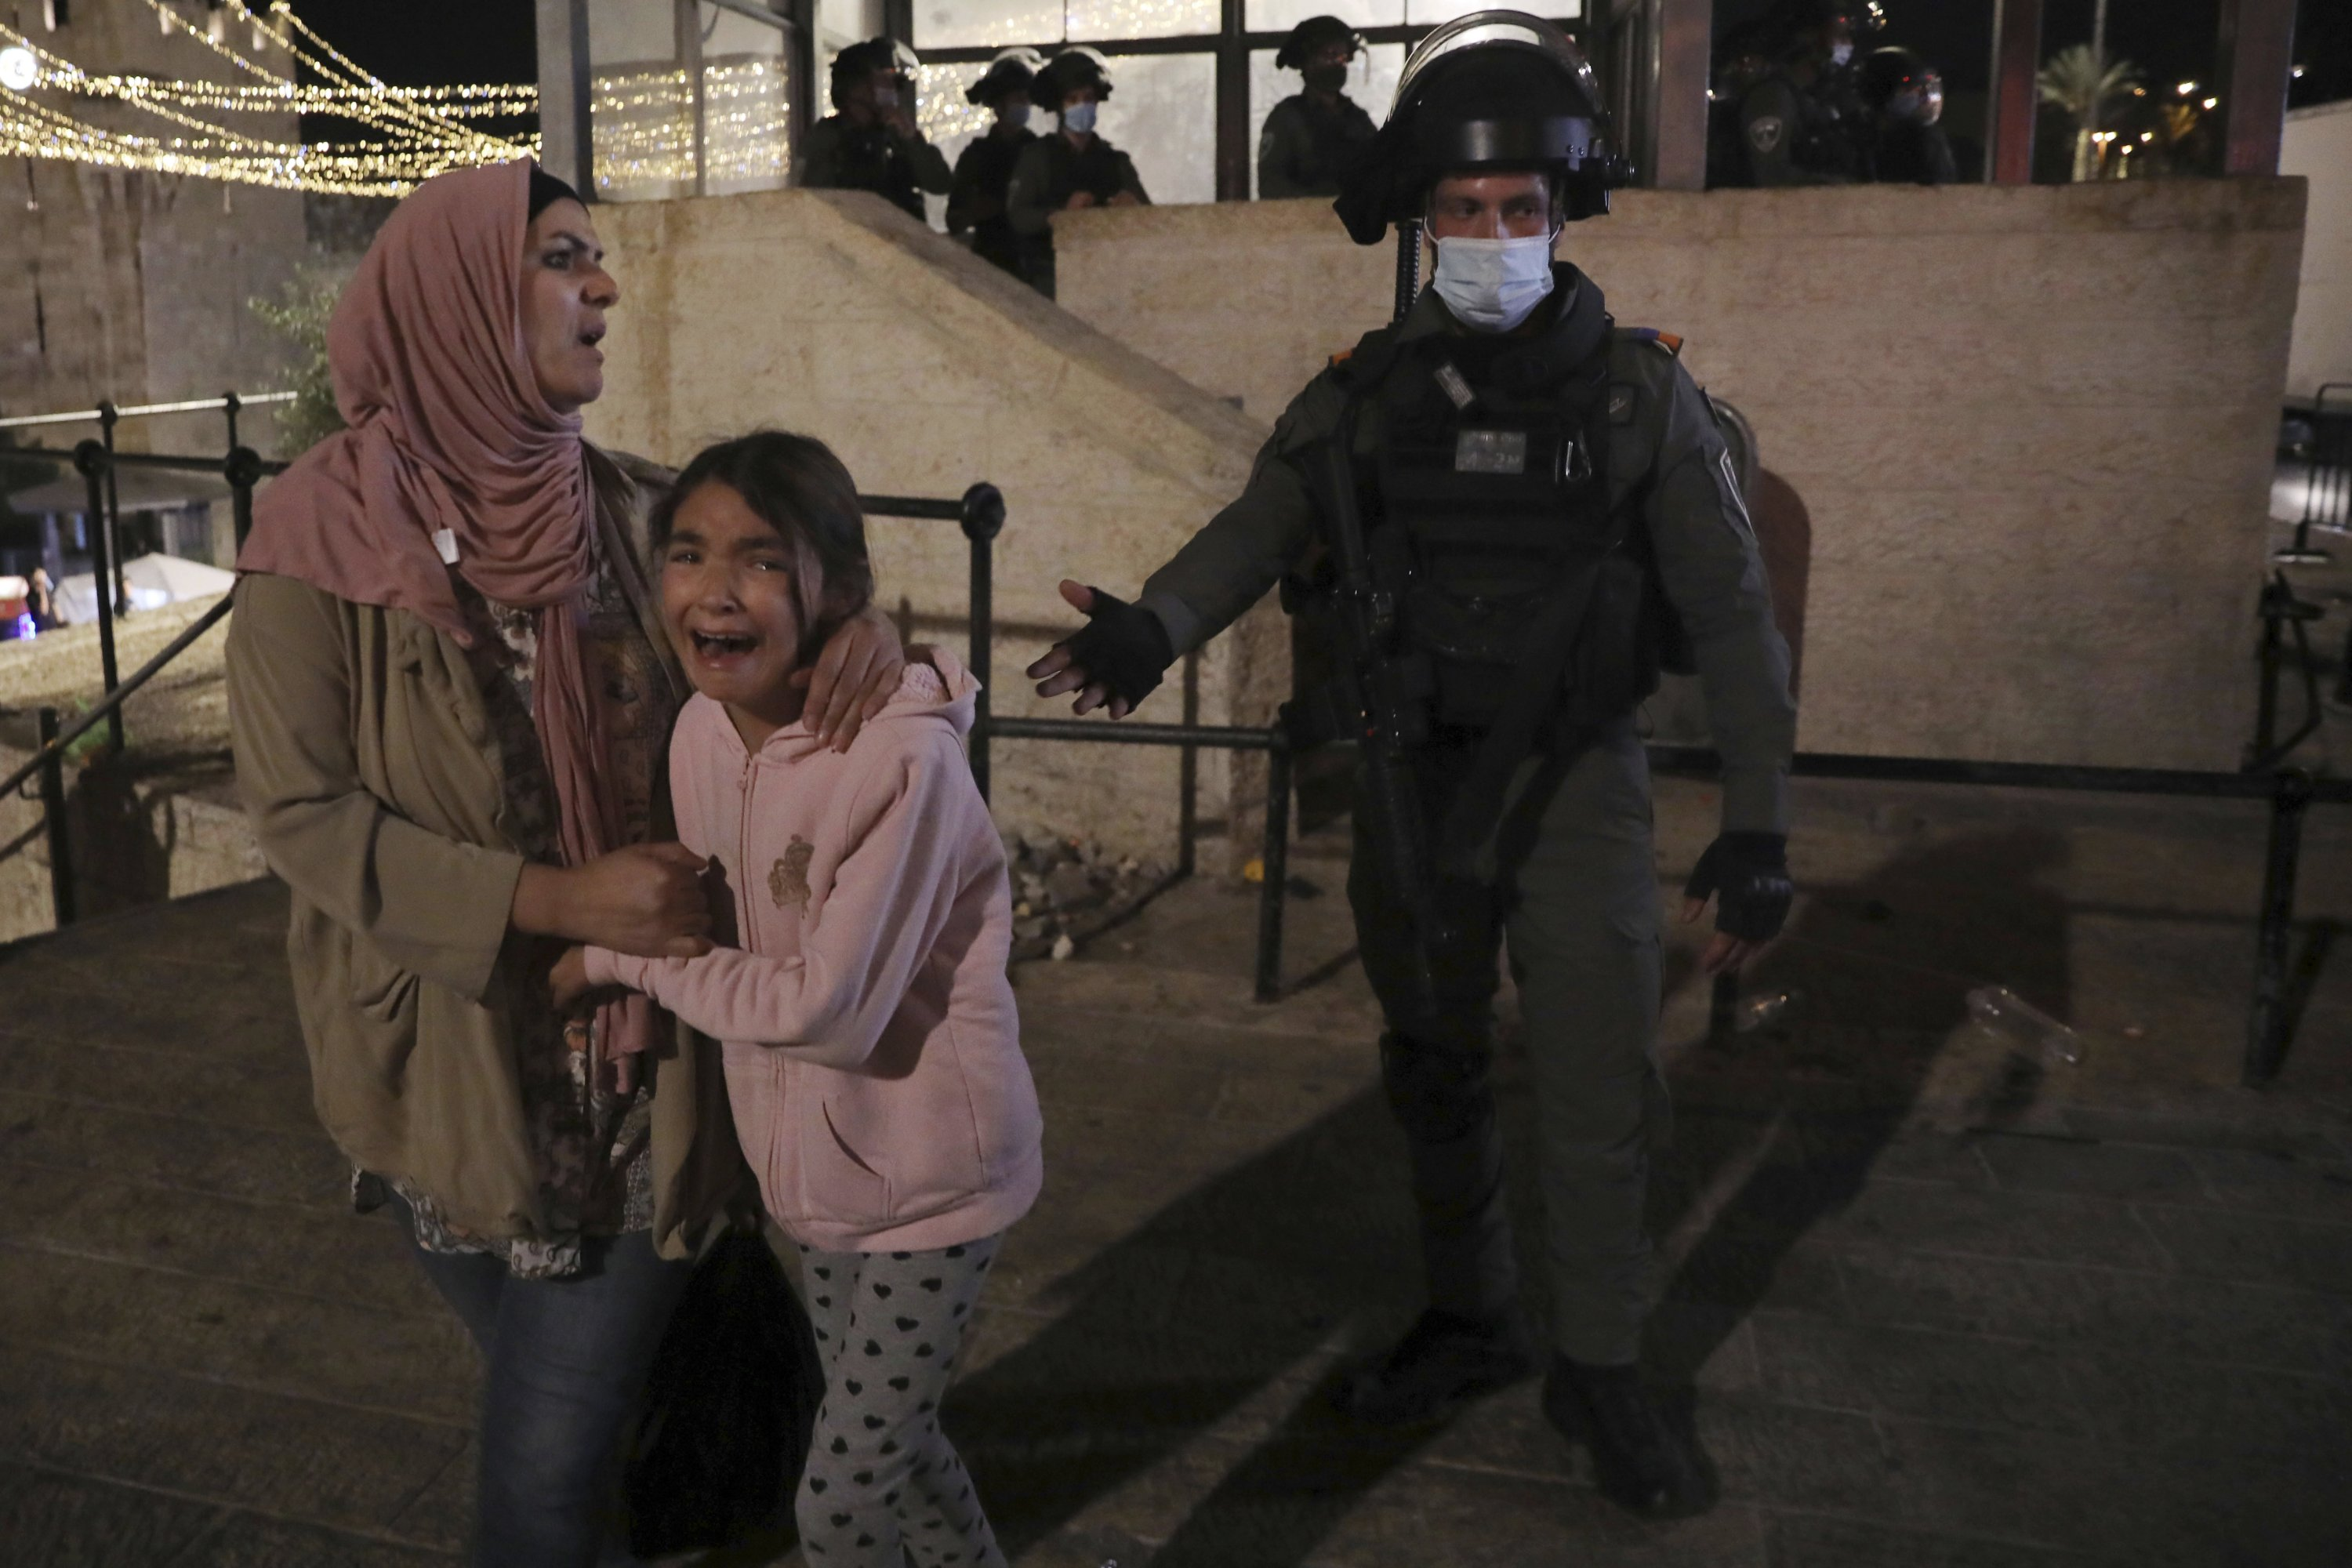 An Israeli police officer gestures to a Palestinian woman and her daughter, frightened by Israeli attacks to the outside of the Old City, East Jerusalem, occupied Palestine, May 11, 2021. (AP Photo)